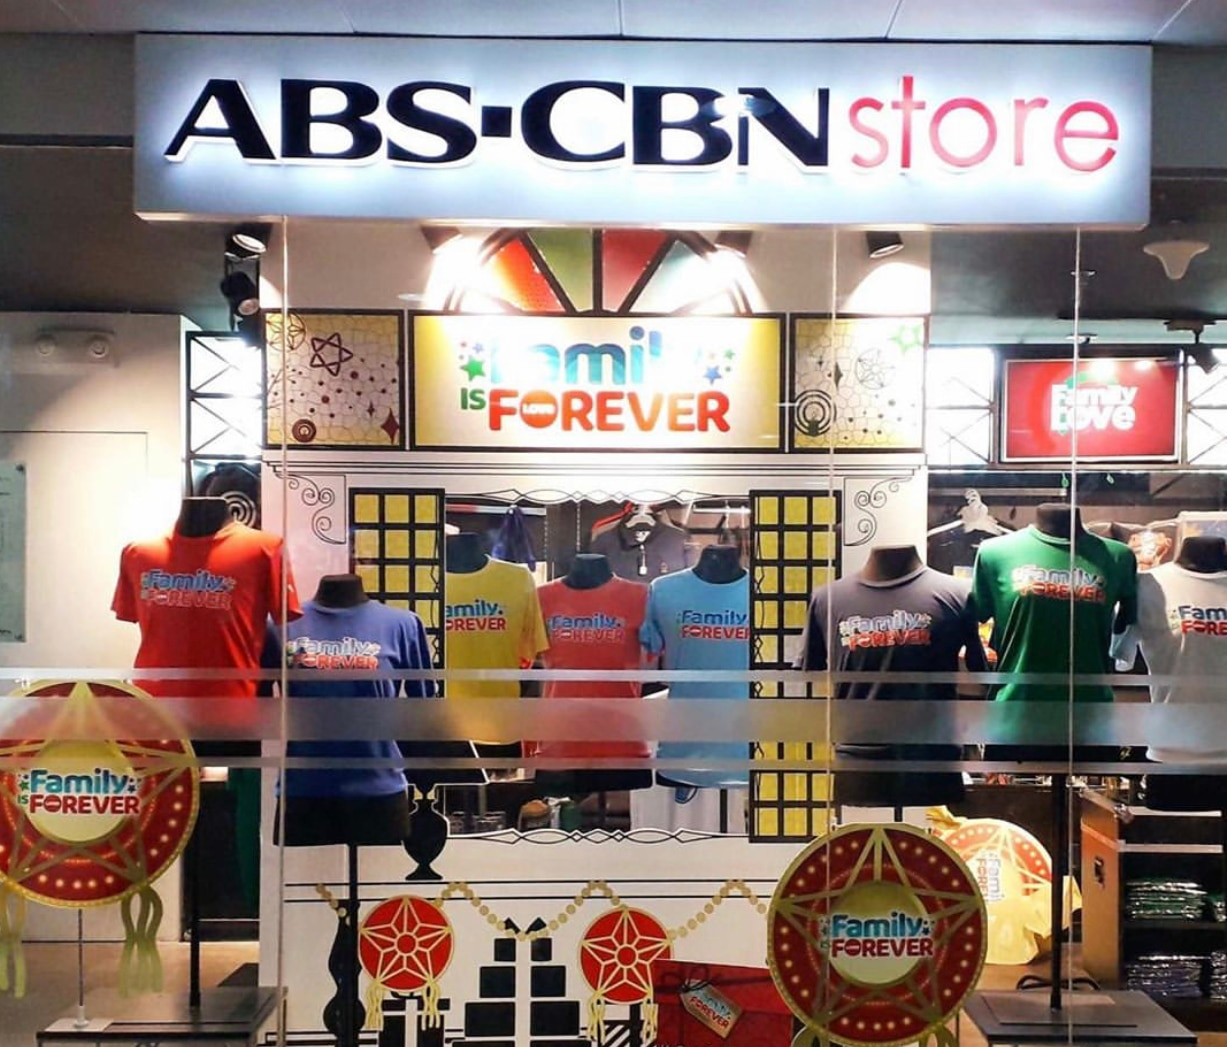 ABS CBN Store